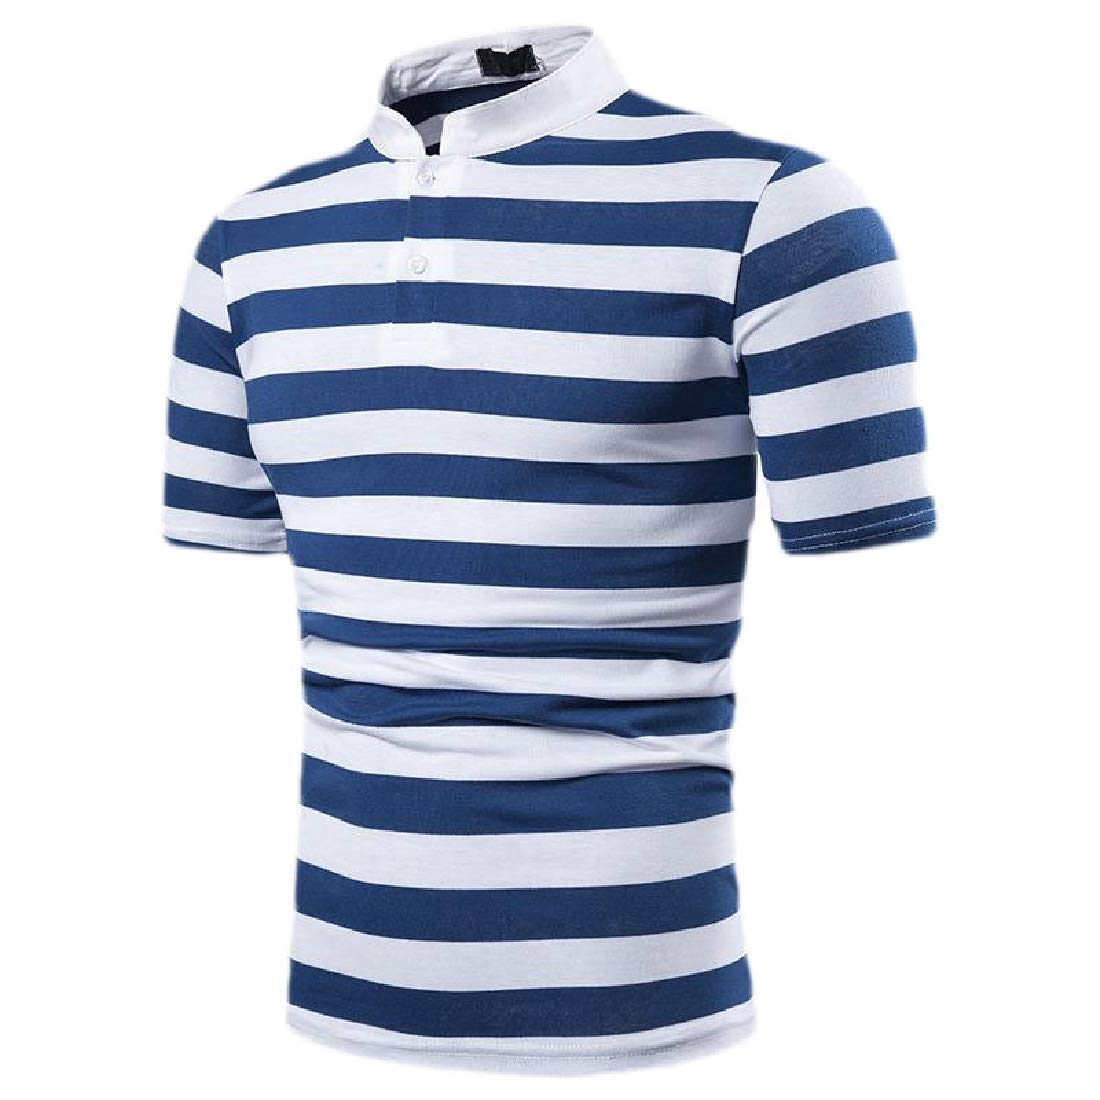 Rrive Men Fashion Short Sleeve Lapel OL Striped T-Shirt Tee Top